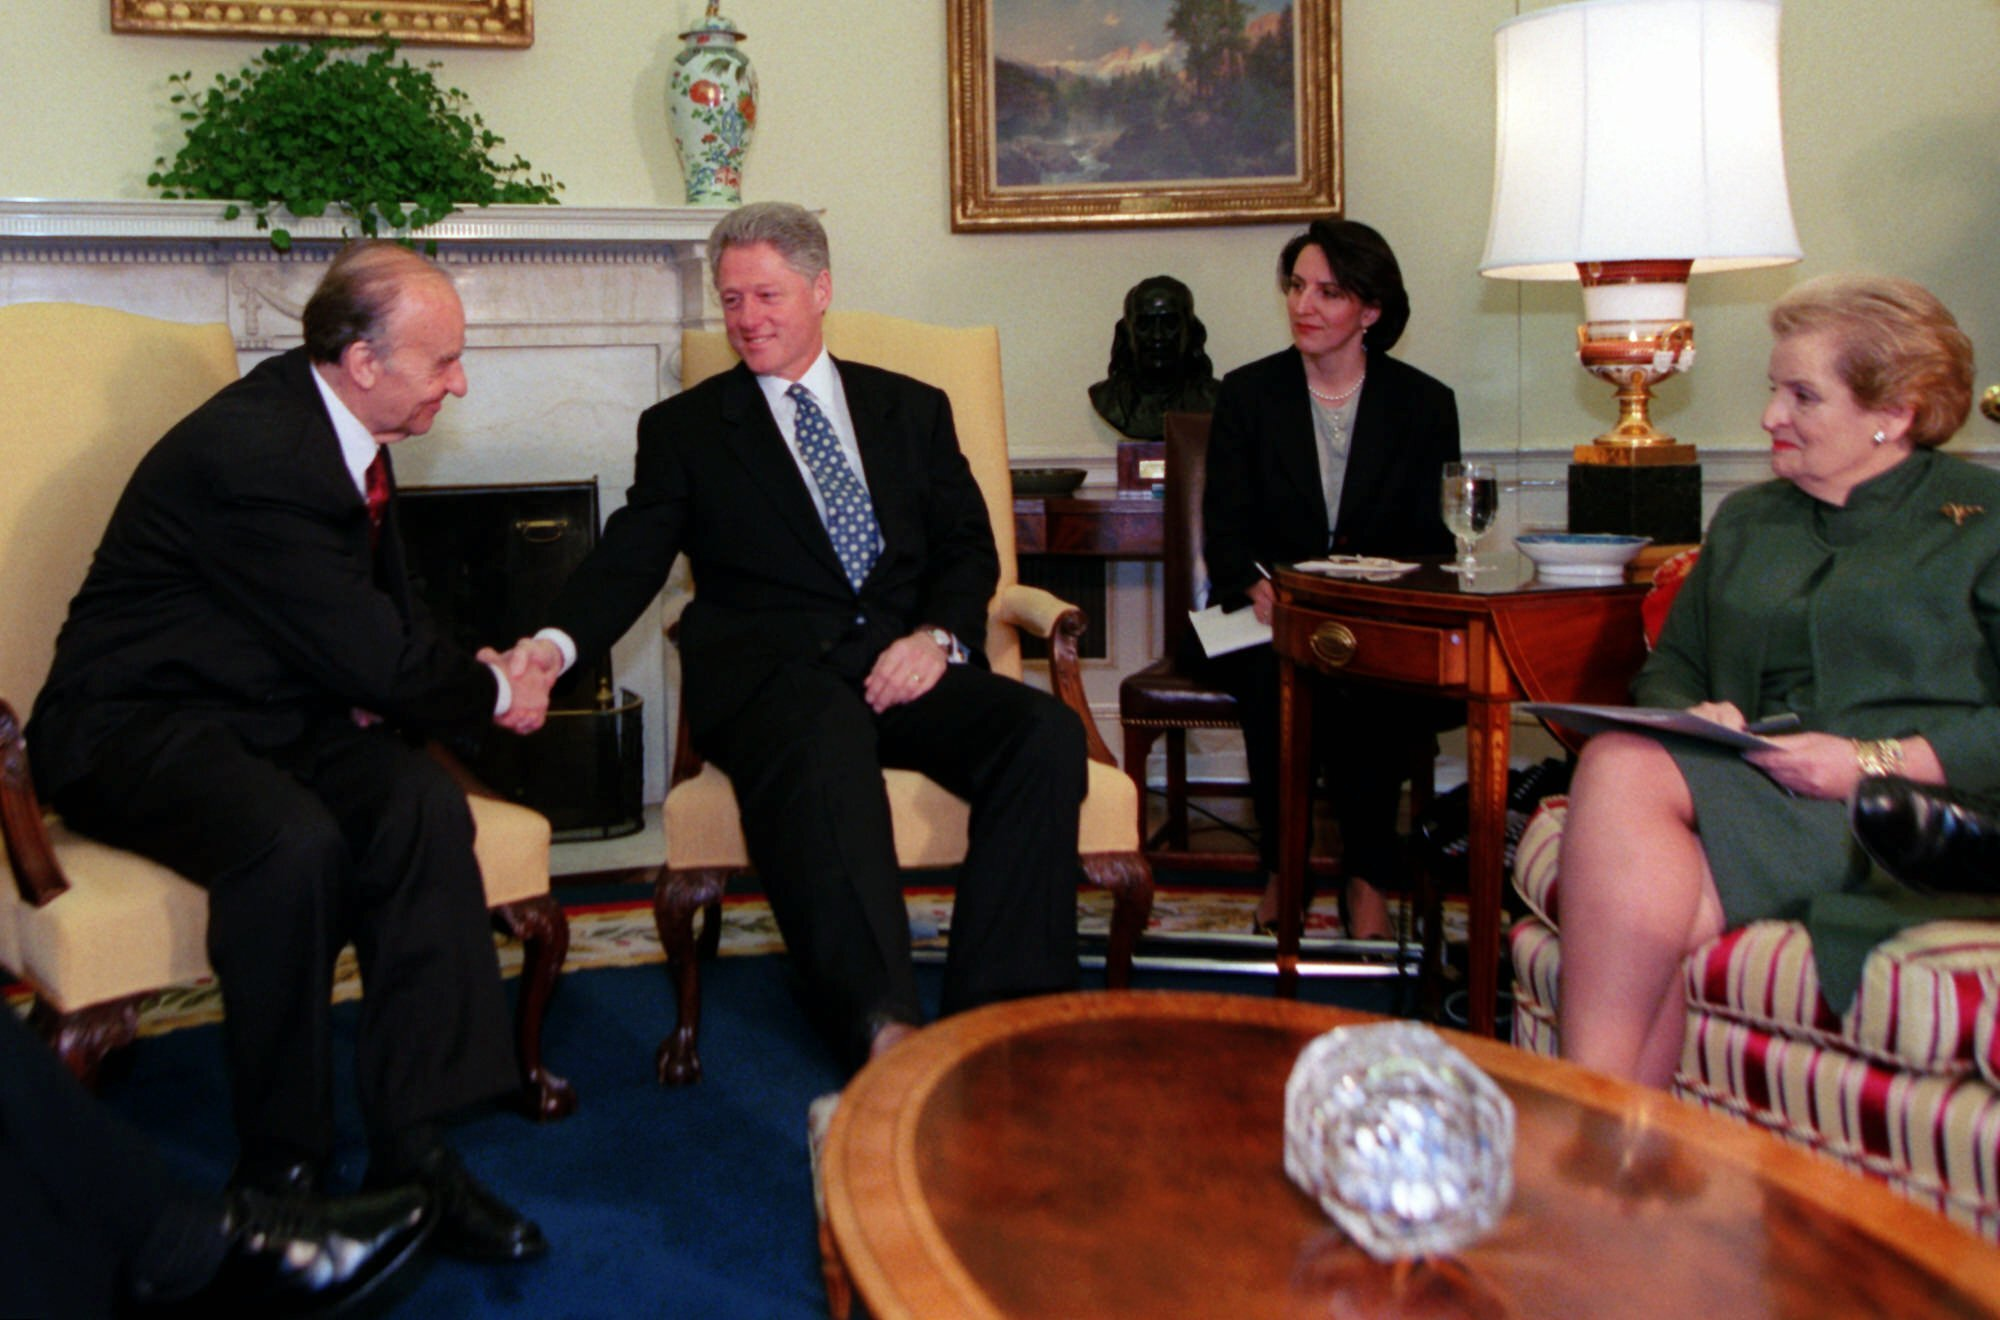 Clinton Us Leaders Mark 20 Years Since Dayton Peace Accord